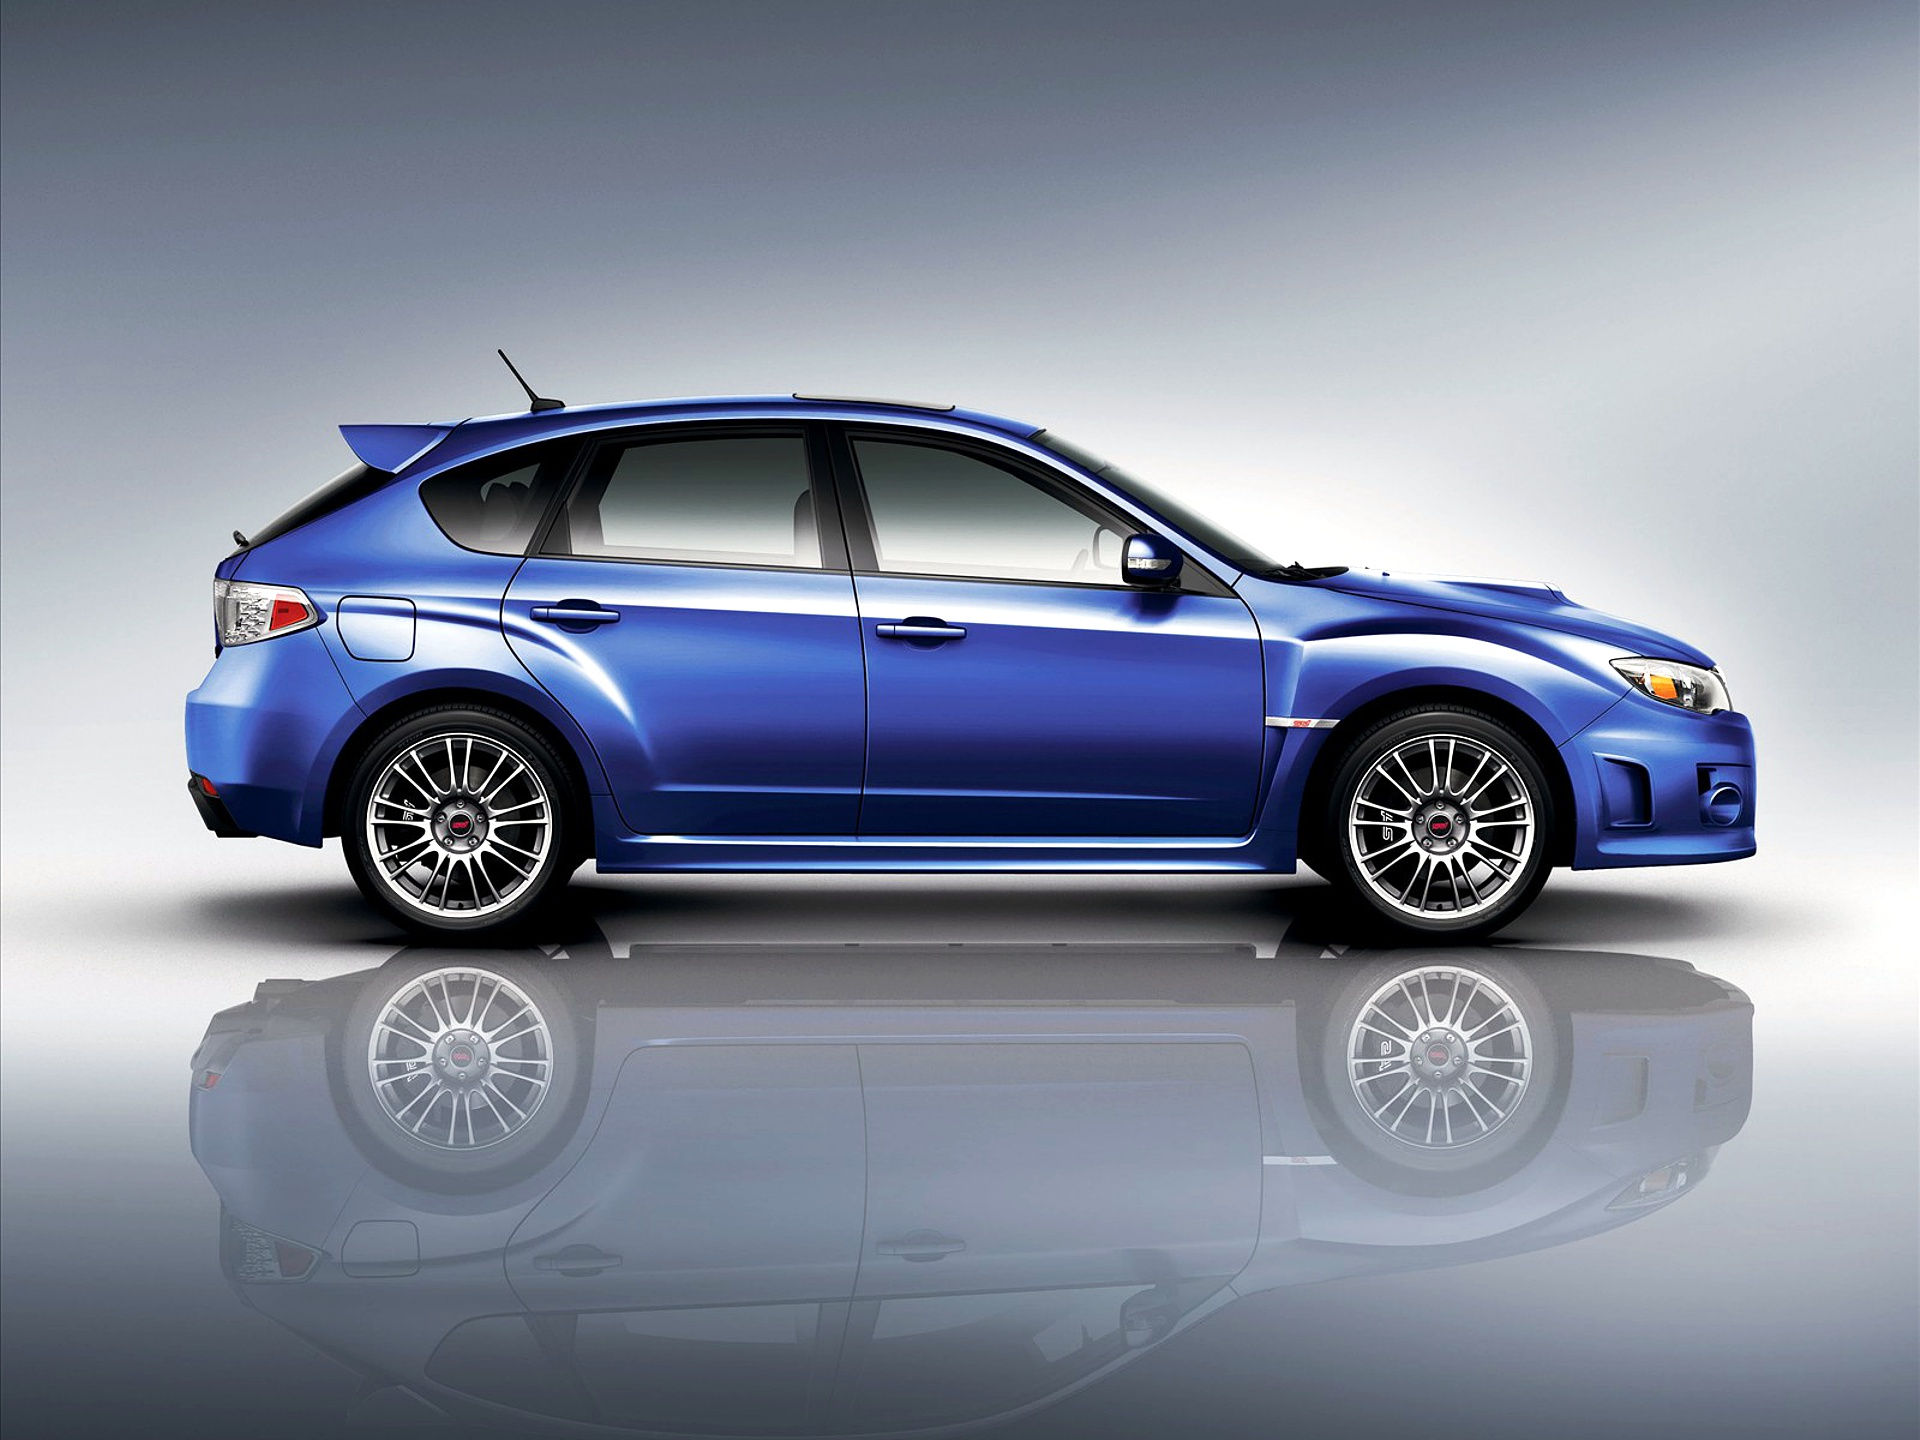 2016 Subaru Wrx Sti Hatchback for Pinterest 1920x1440